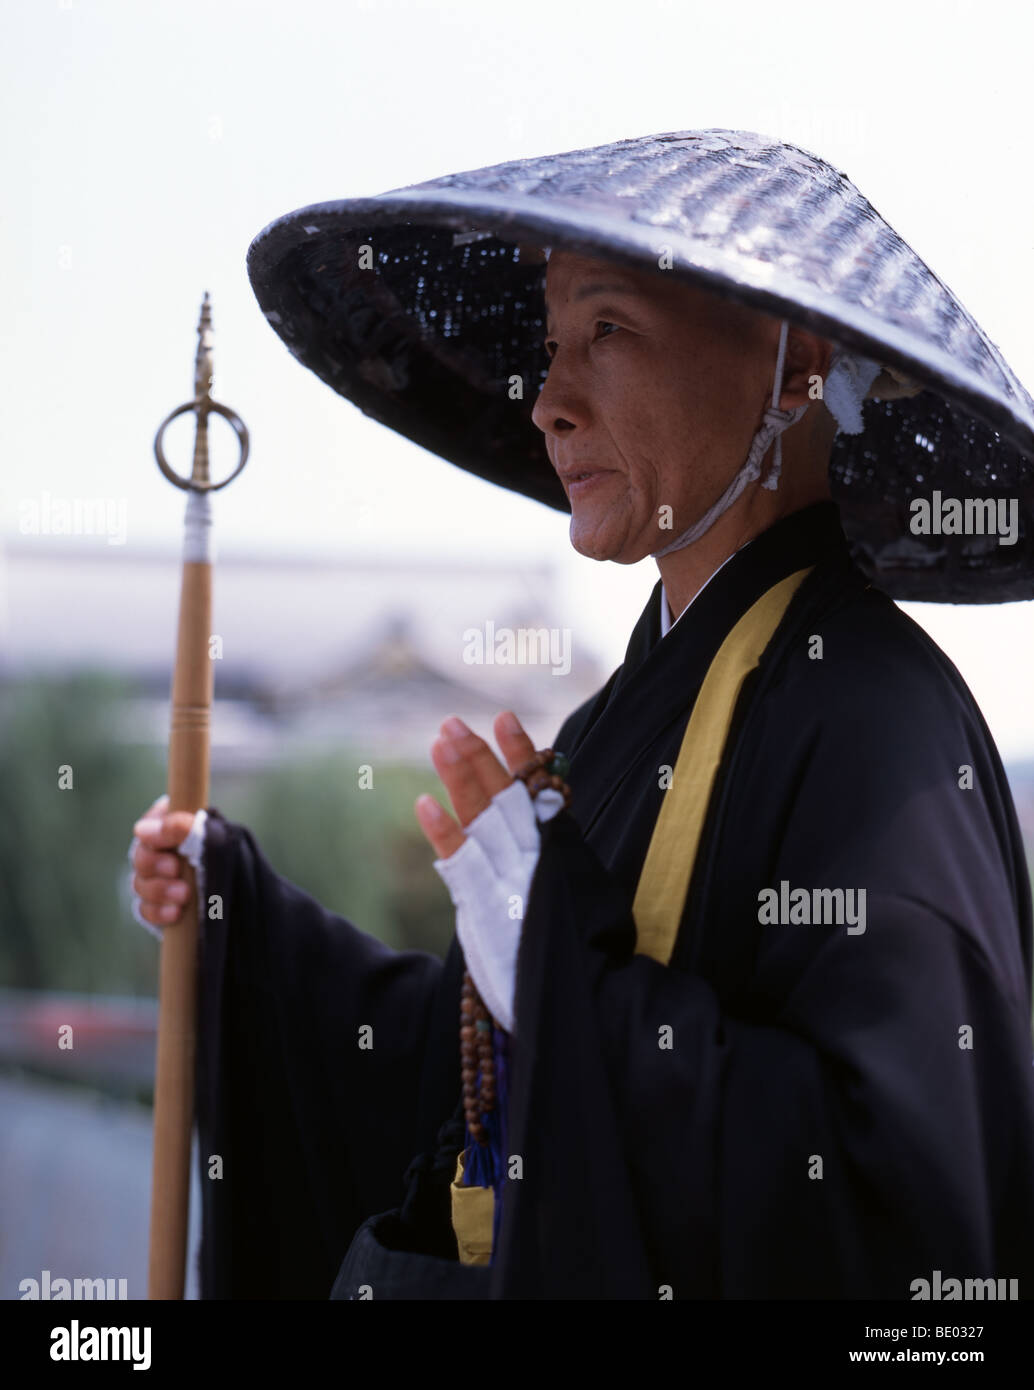 Female monk in Kyoto, Japan. Holding shakujo staff, wearing a gasa (woven rice straw hat) - Stock Image